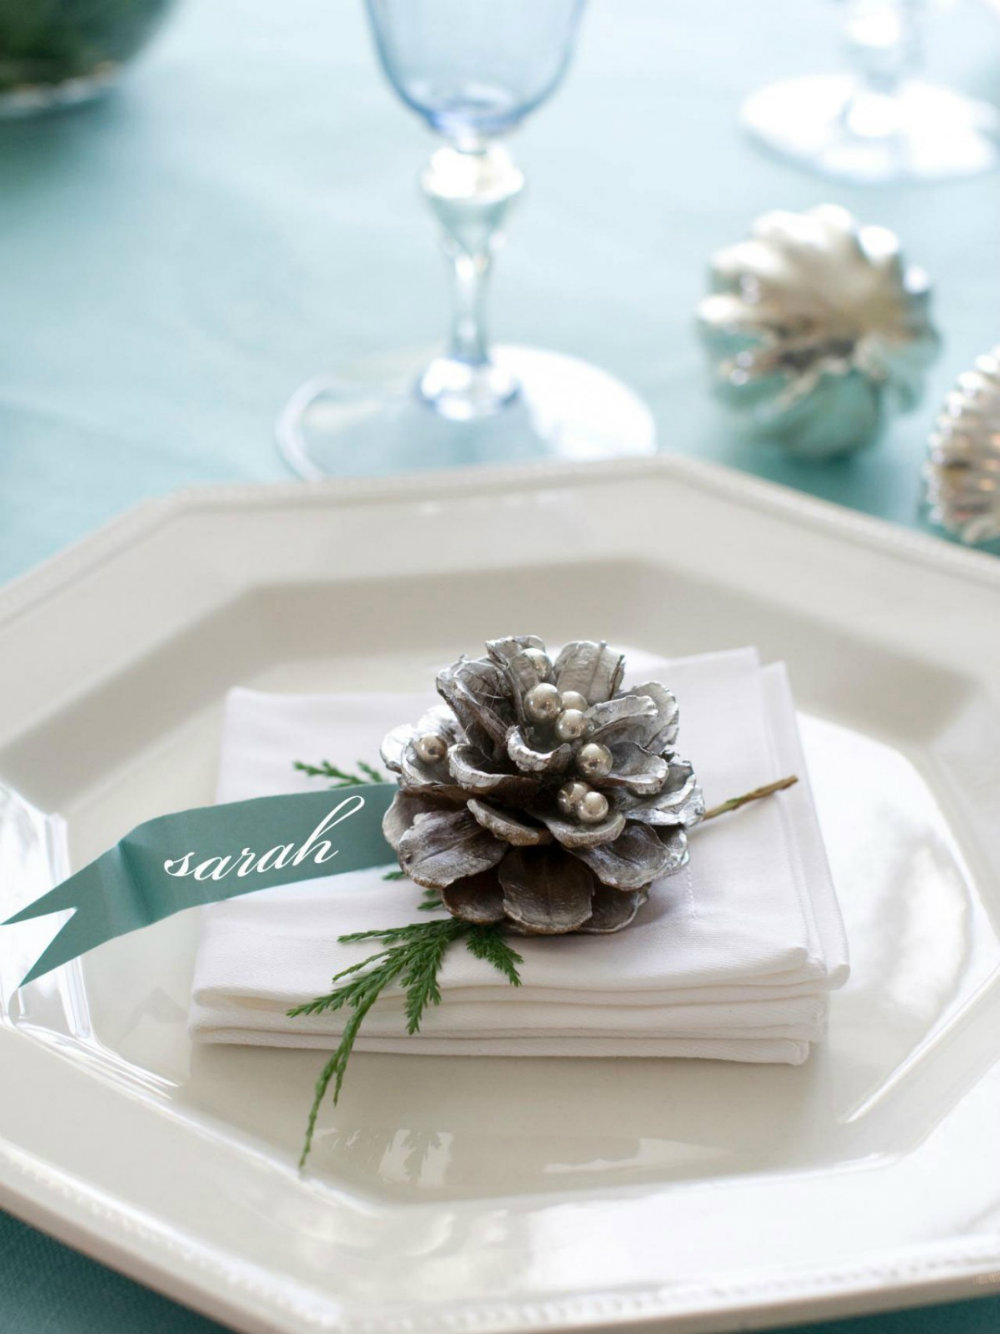 5 Elegant Christmas Table Décor Ideas 04 Christmas Table Décor 5 Elegant Christmas Table Décor Ideas 5 Elegant Christmas Table D  cor Ideas 04